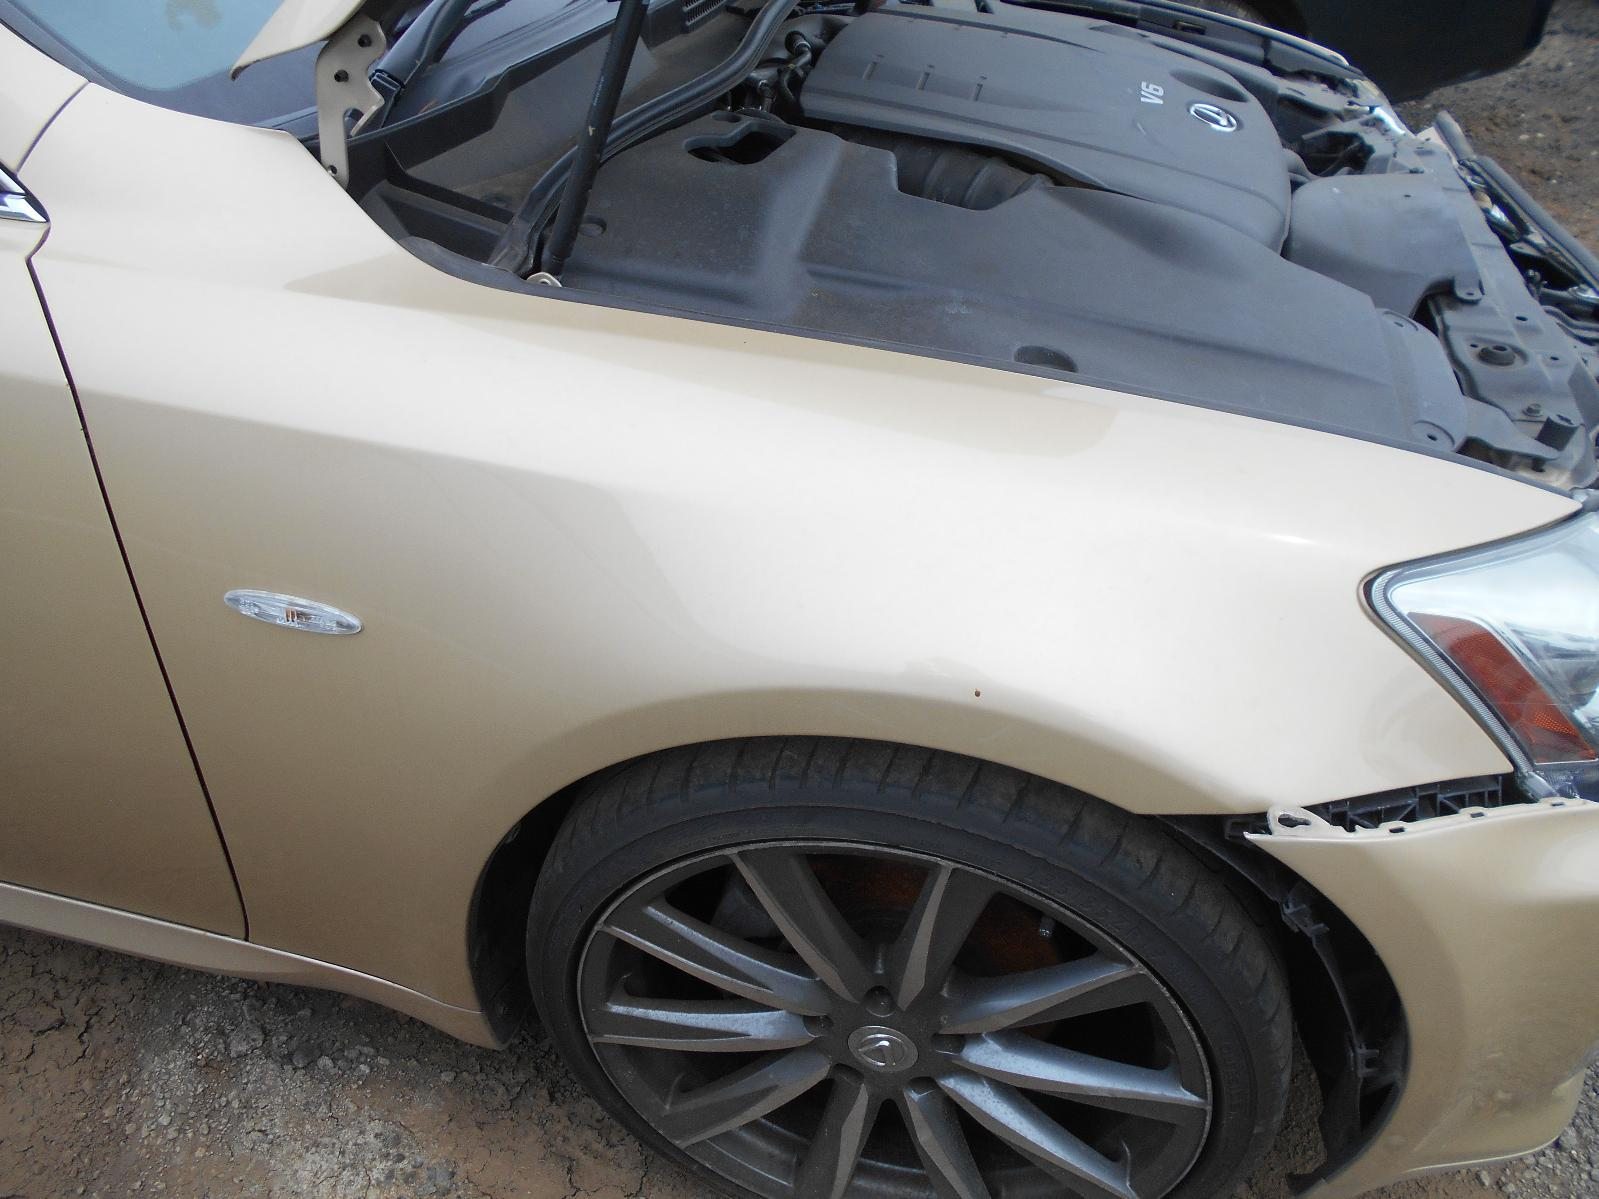 LEXUS IS250/IS250C, Right Guard, IS250, GSE20R, 11/05-07/08